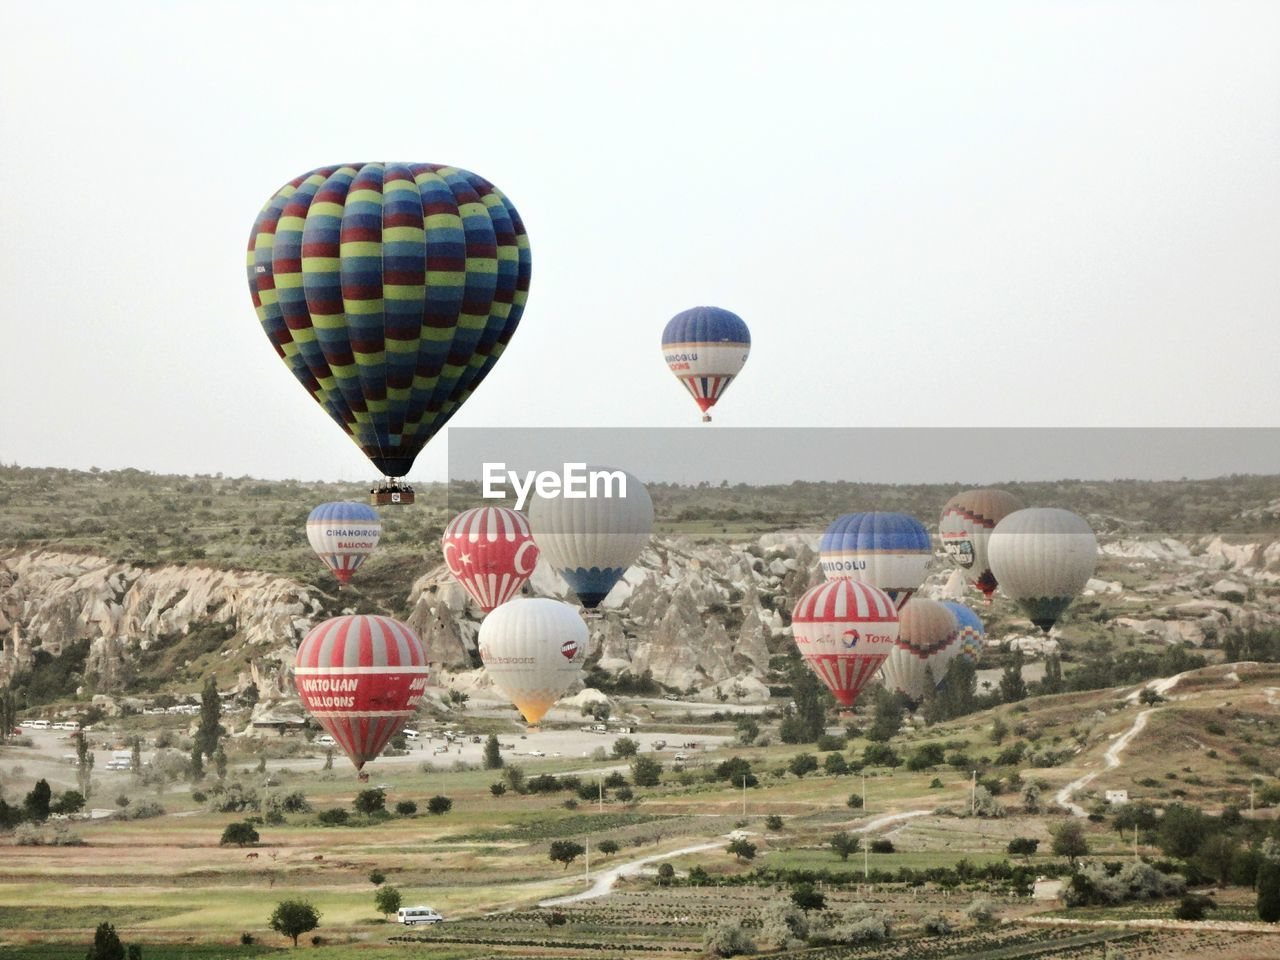 hot air balloon, adventure, outdoors, sky, mid-air, transportation, grass, landscape, day, ballooning festival, clear sky, nature, flying, air vehicle, no people, multi colored, beauty in nature, parachute